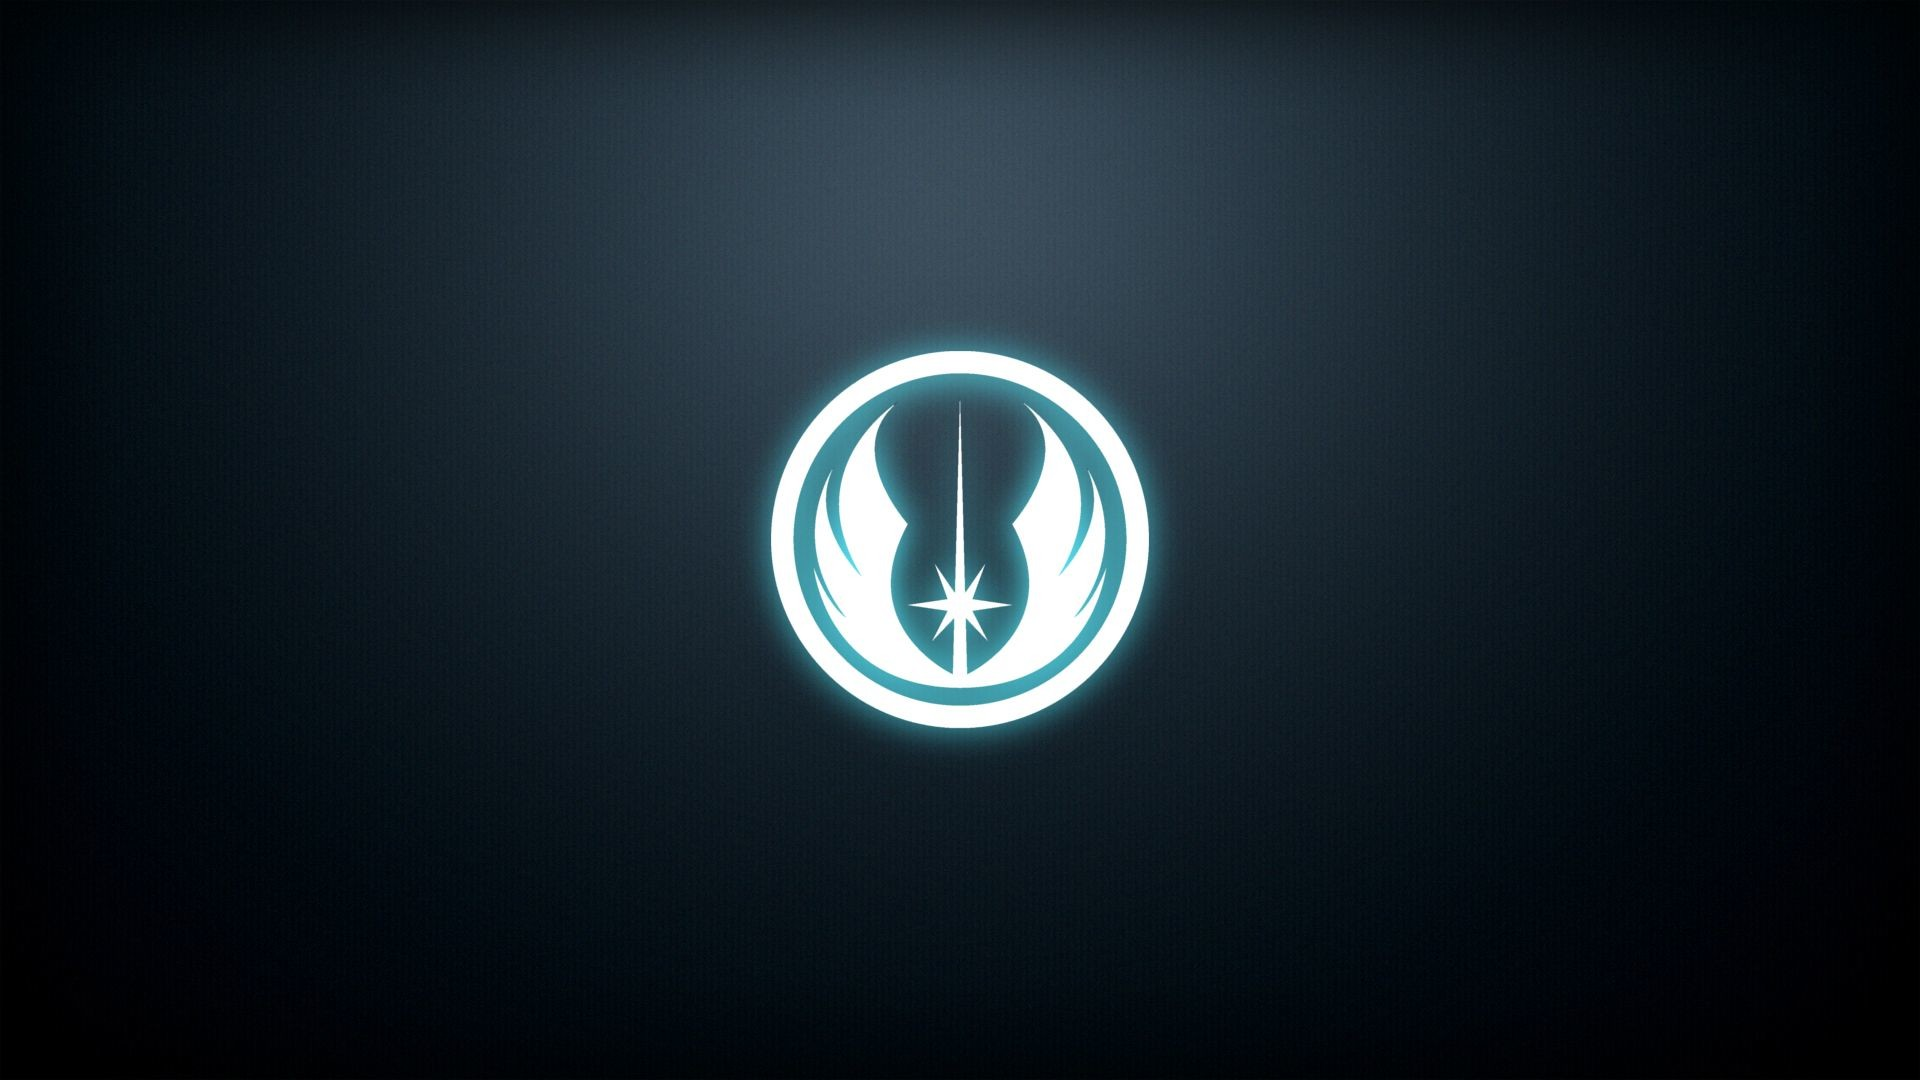 2560x1440 Star Wars Rebel Alliance Wallpaper